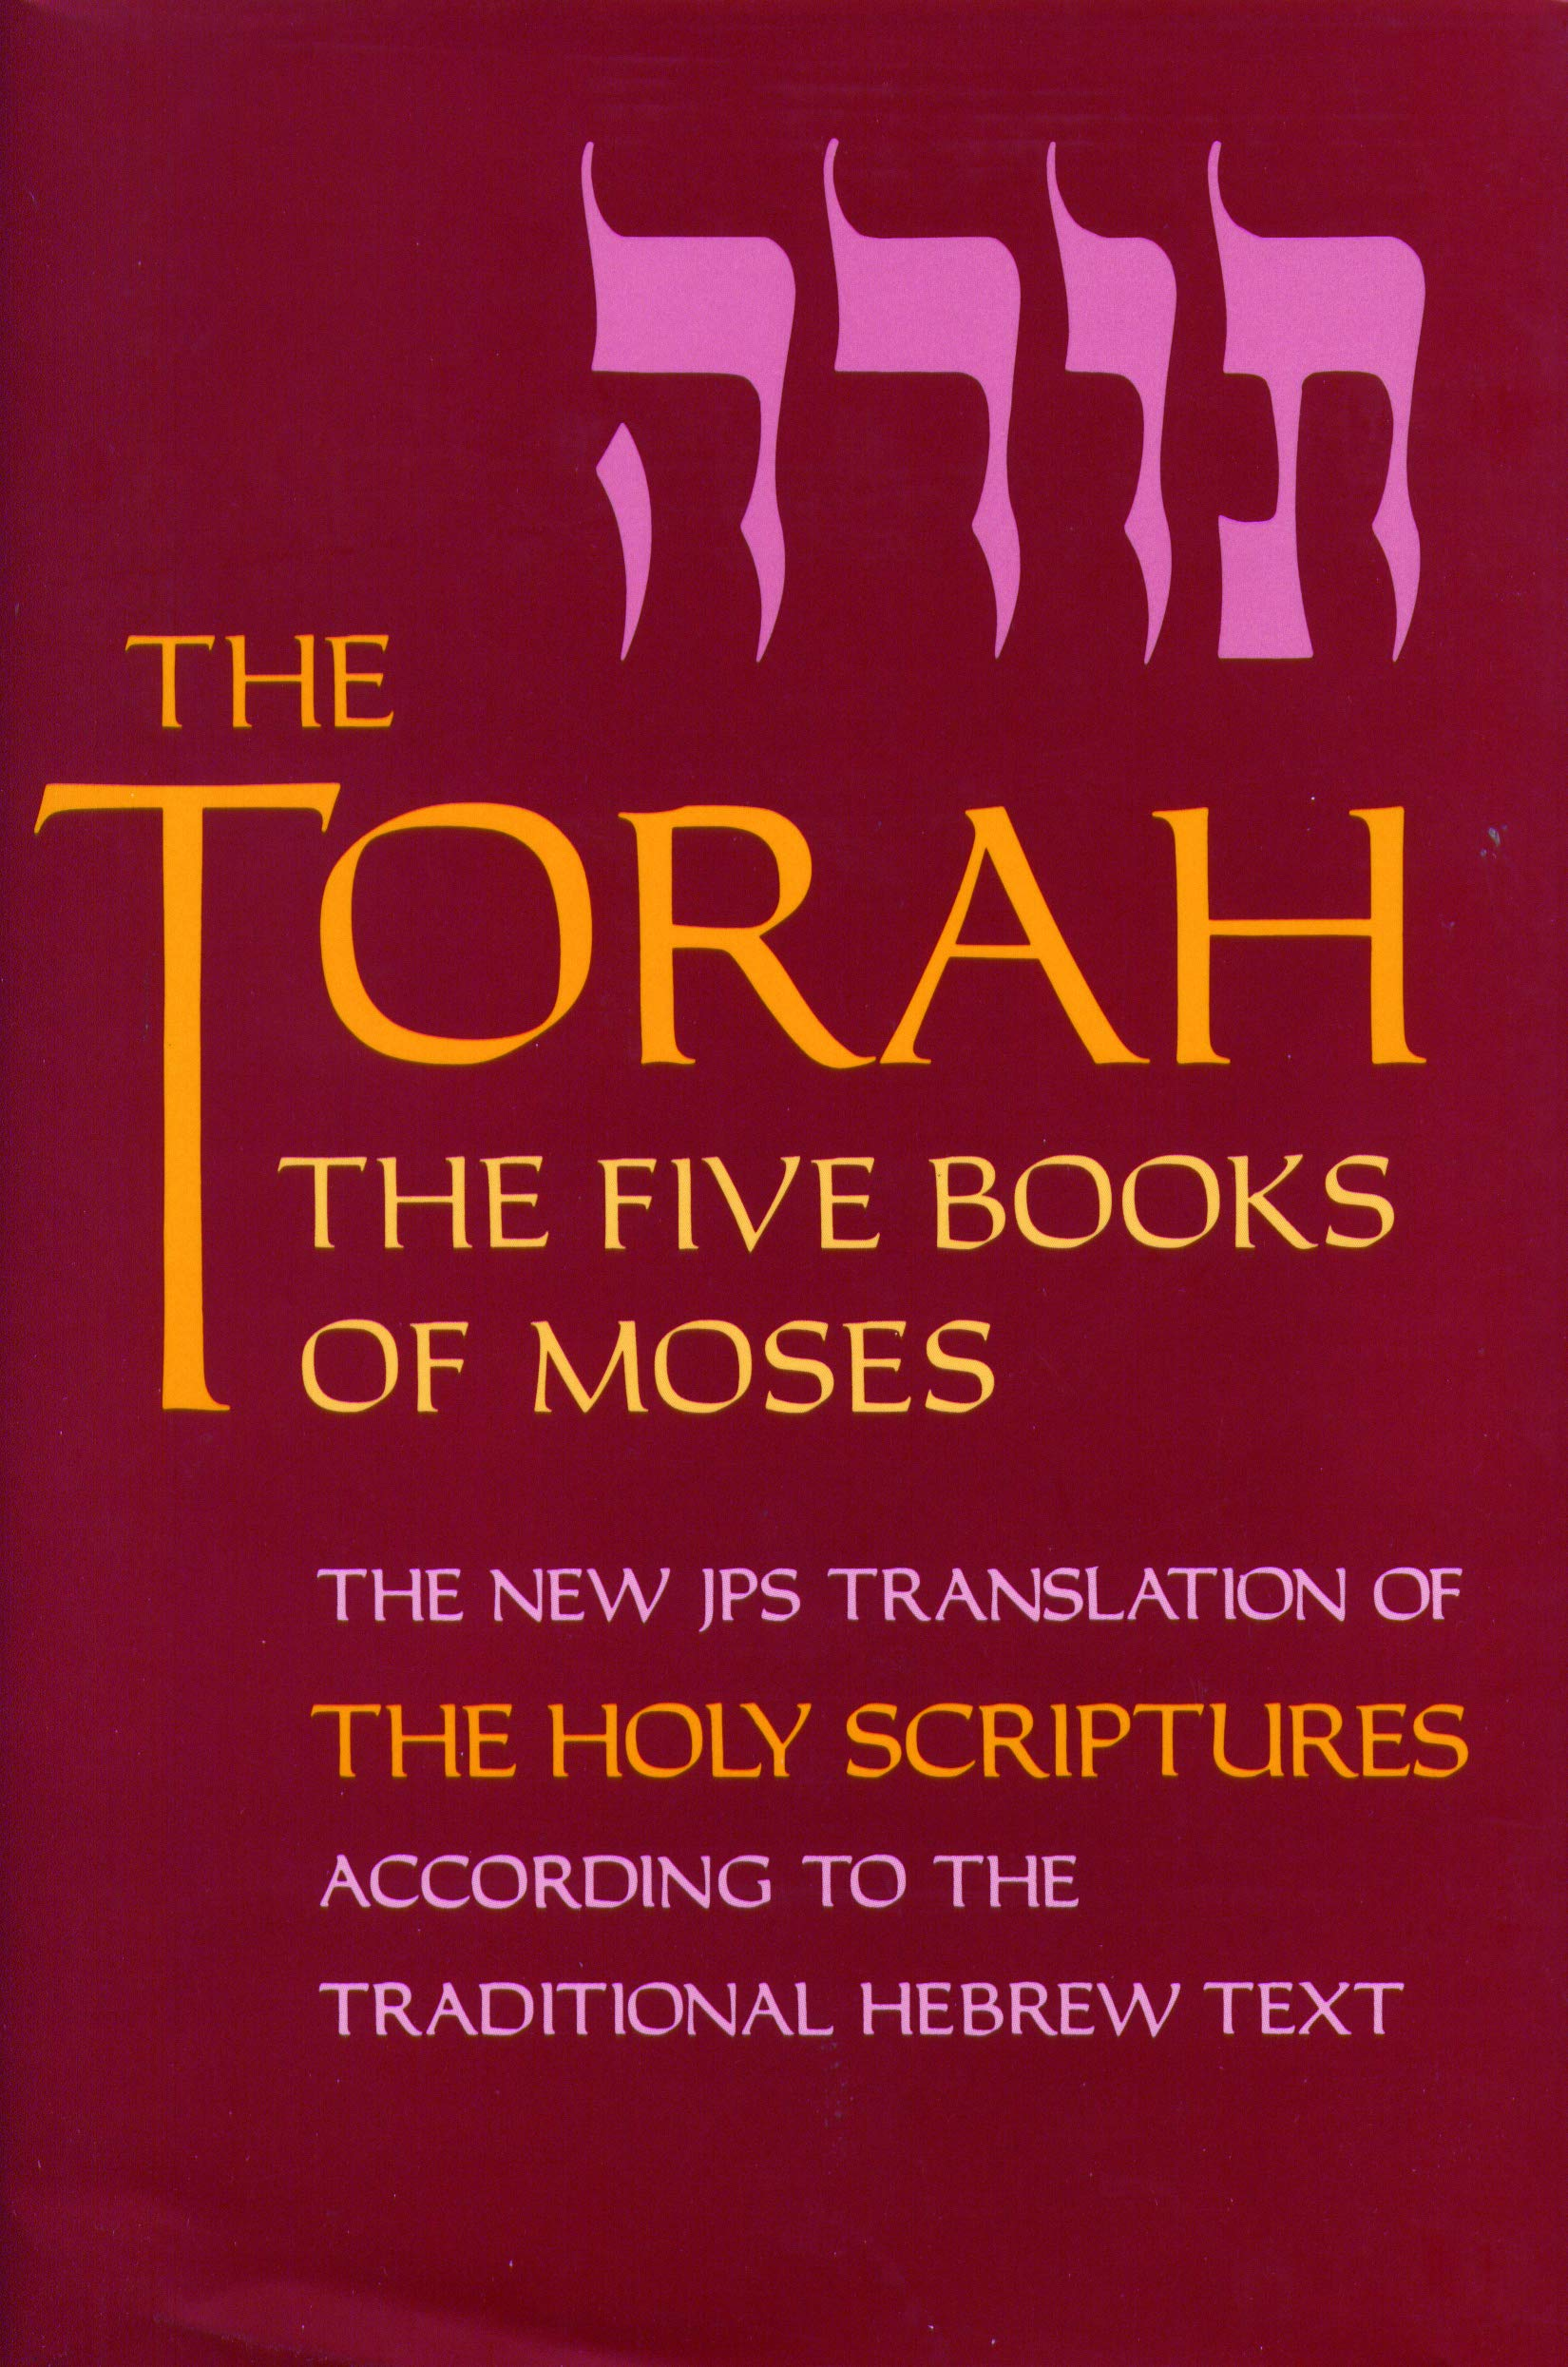 The Torah: The Five Books of Moses, the New Translation of the Holy Scriptures According to the Traditional Hebrew Text by Brand: Jewish Publication Society of America